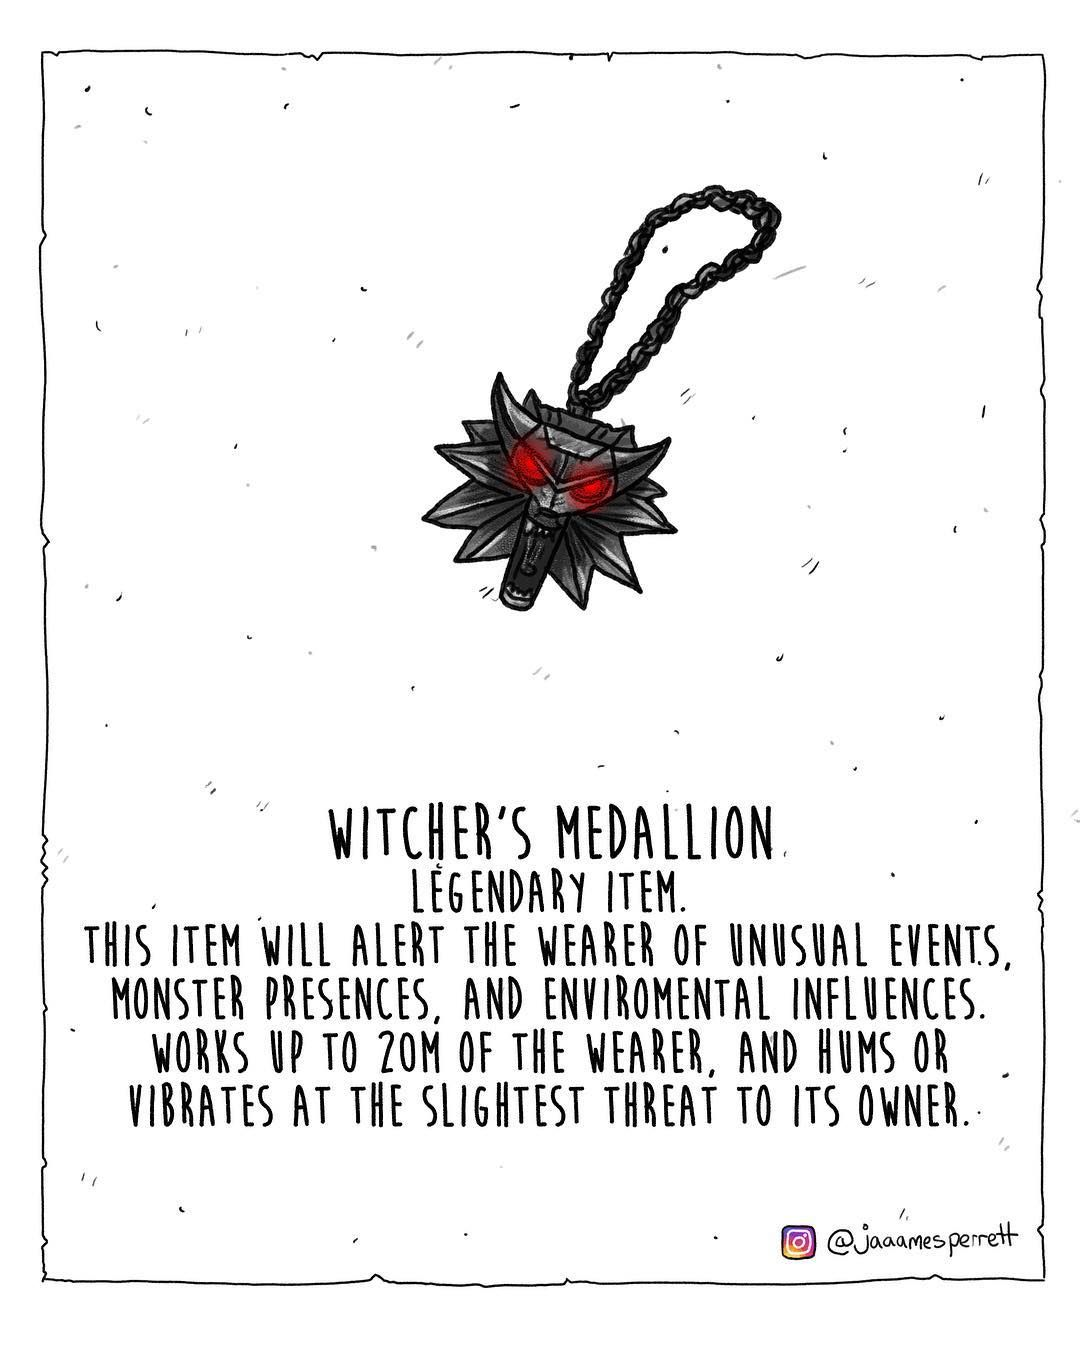 Jp On Instagram Witcher S Medallion Stat Idea By Choccolattepro On Reddit Dun Dungeons And Dragons Homebrew Dnd Dragons D D Dungeons And Dragons